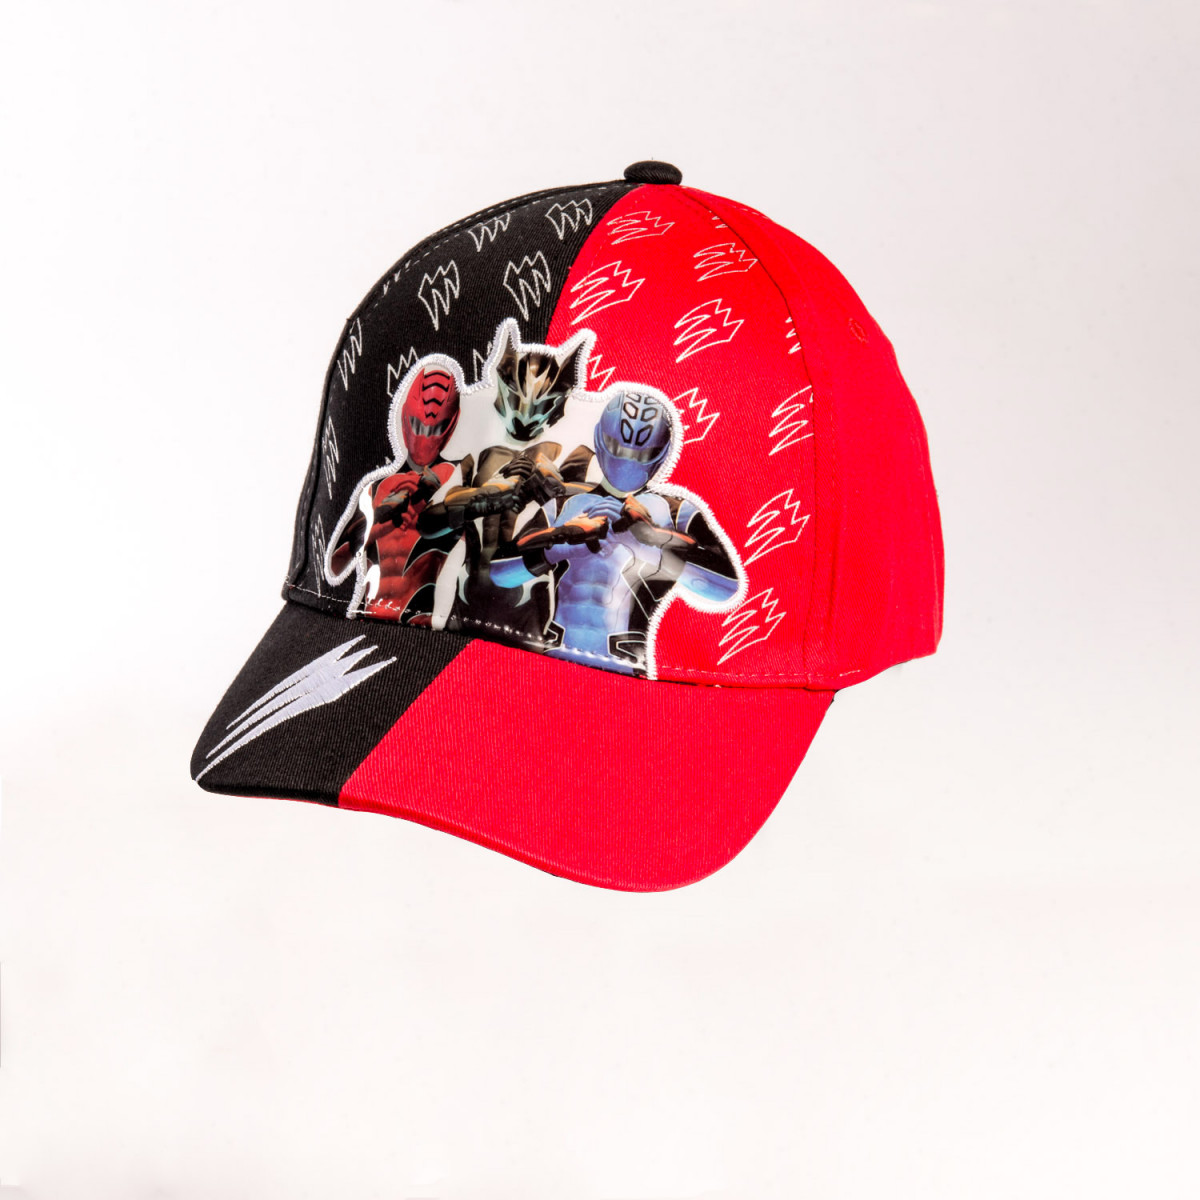 GORRA FOOTY POWER RANGERS JUNGLE STK